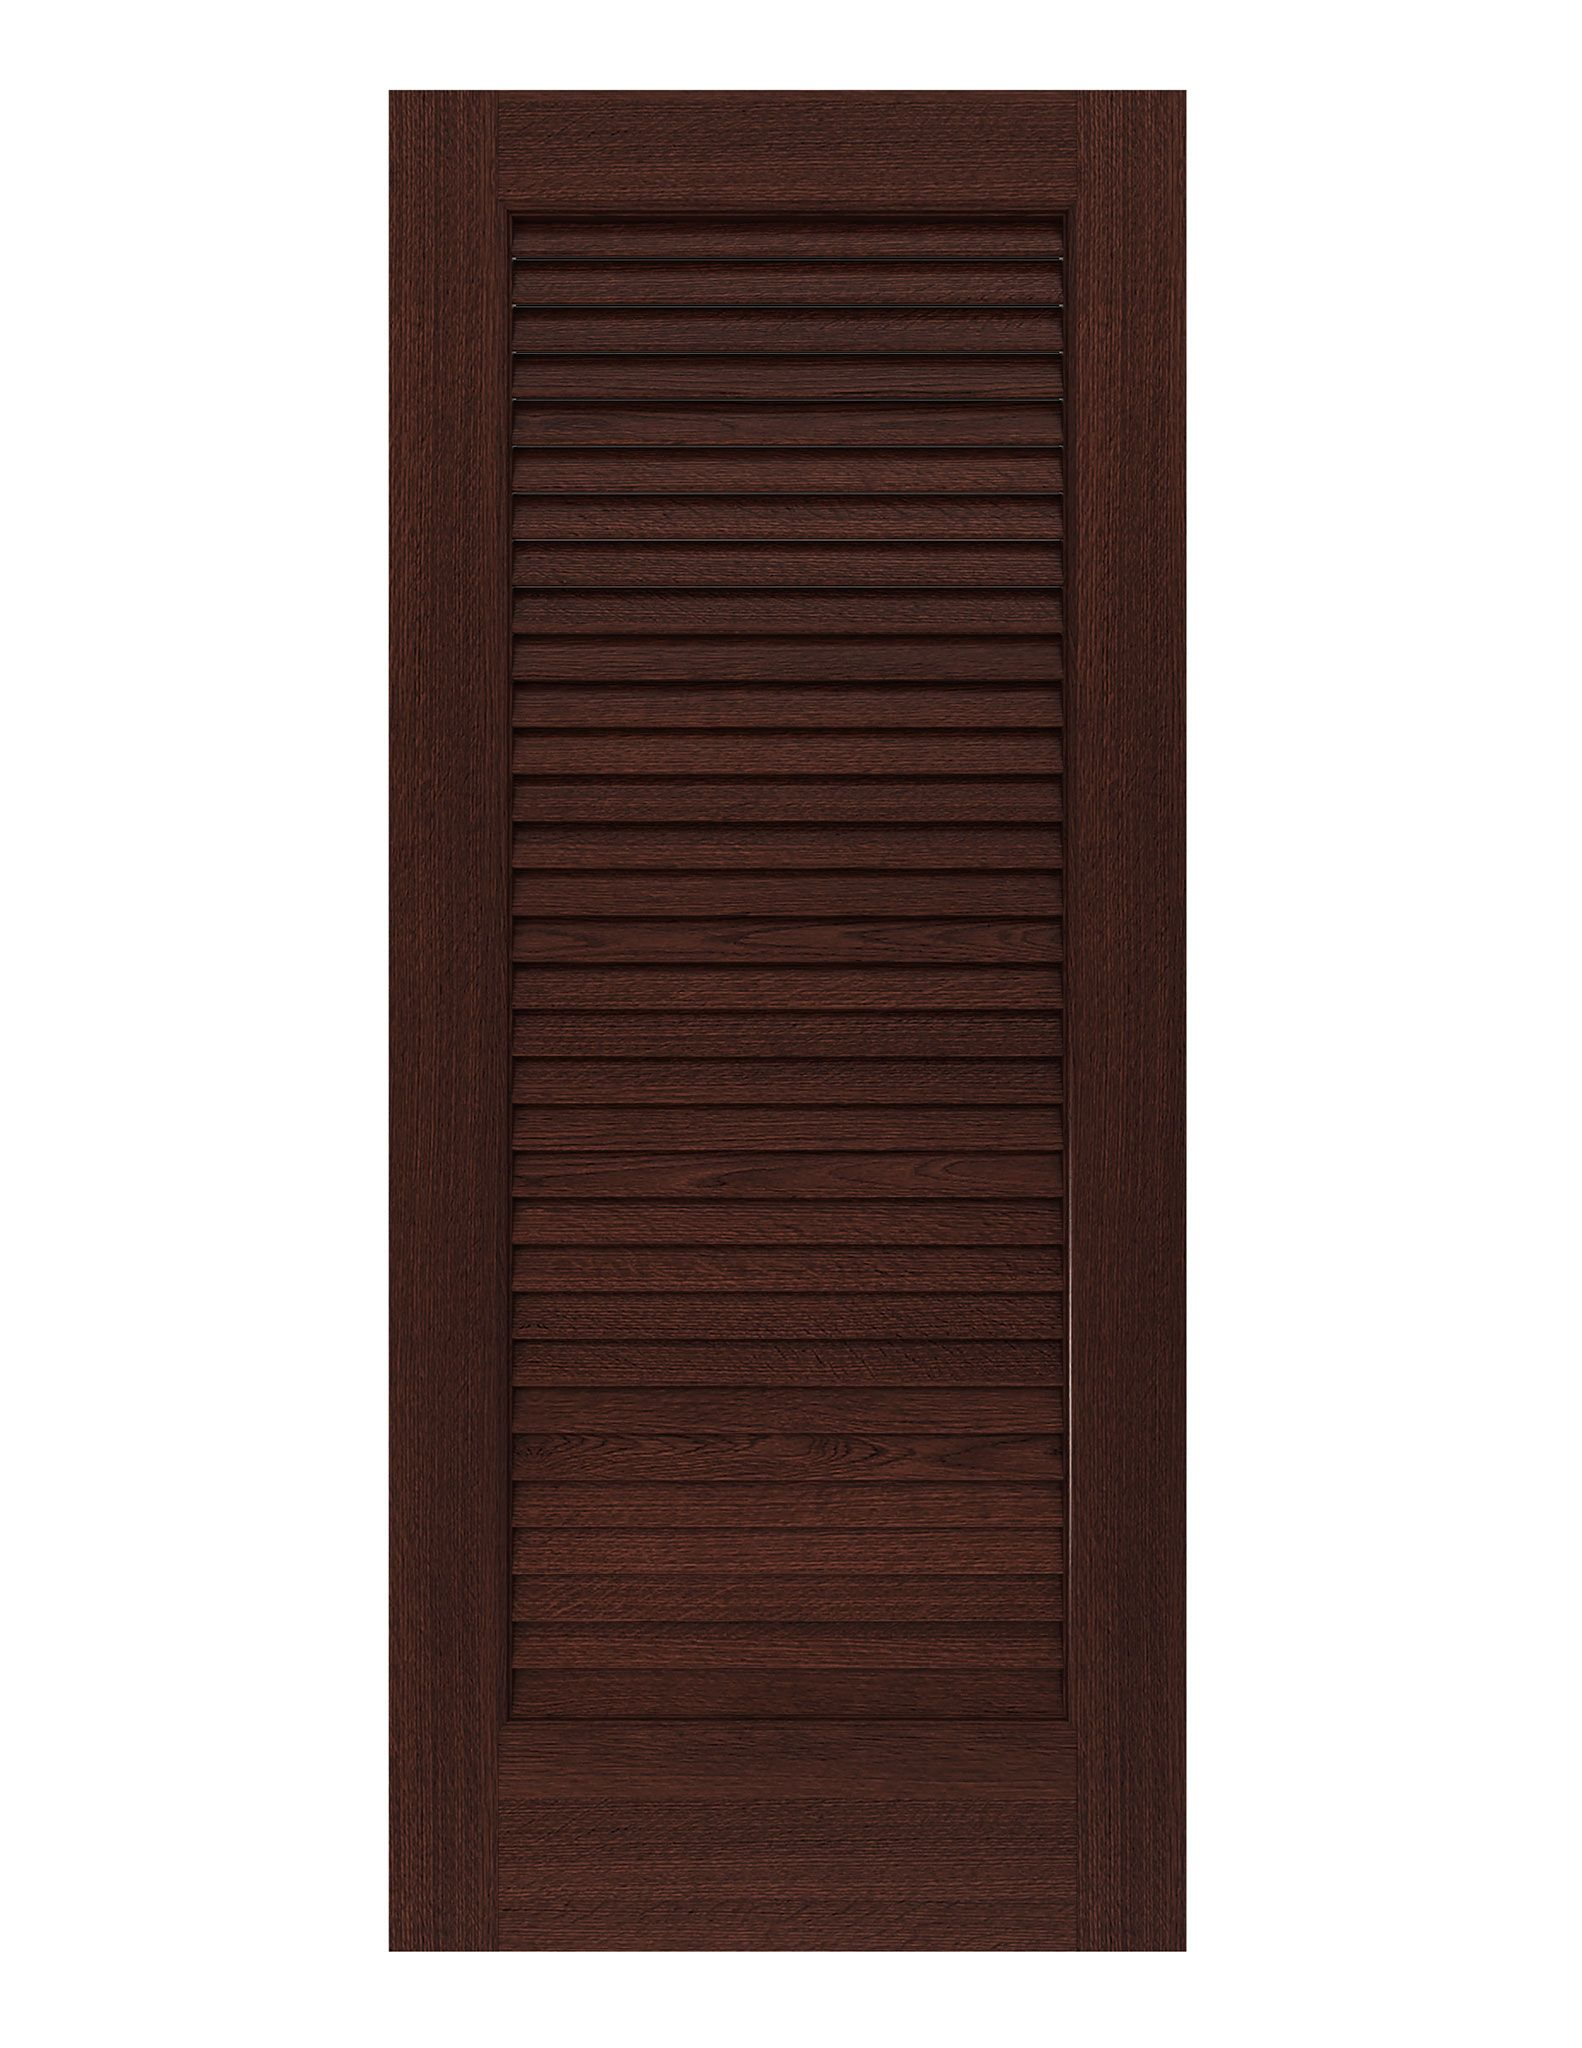 Full louver Masonite Architectural louver restroom doors